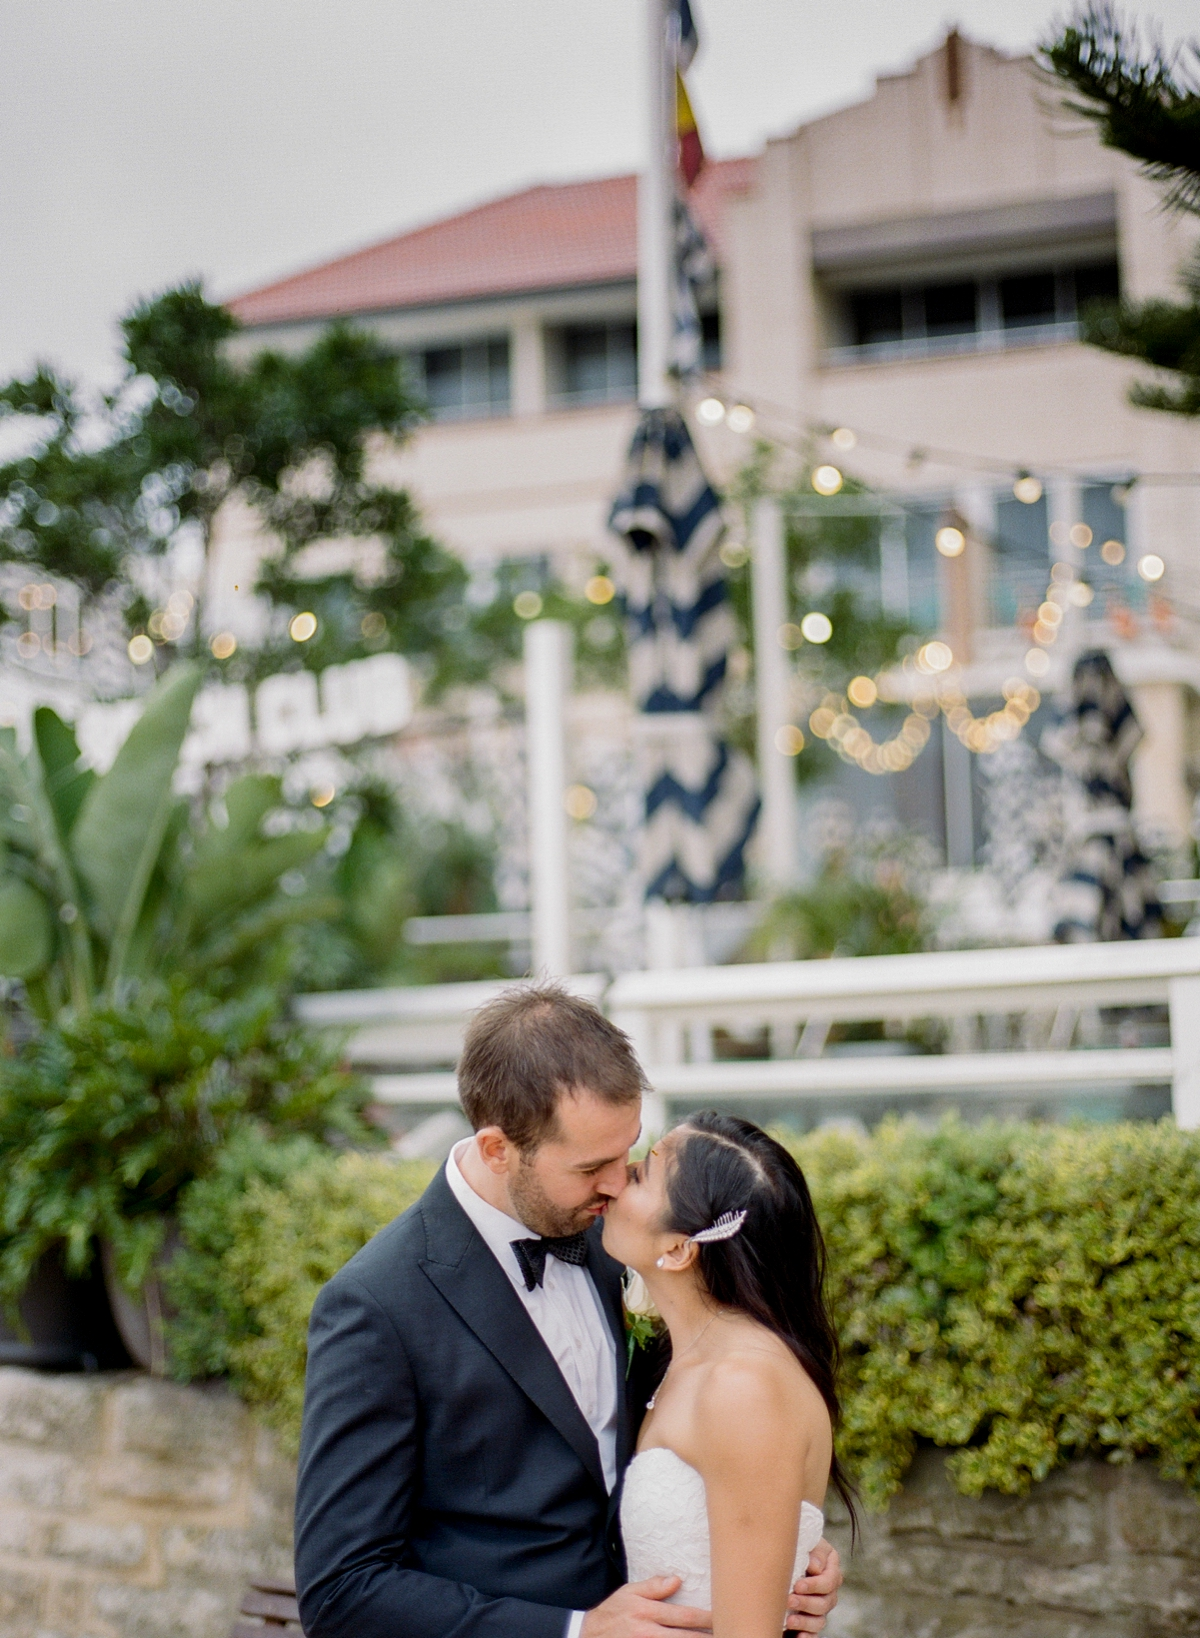 Watsons Bay wedding by Mr Edwards Photography_0737_1005.jpg